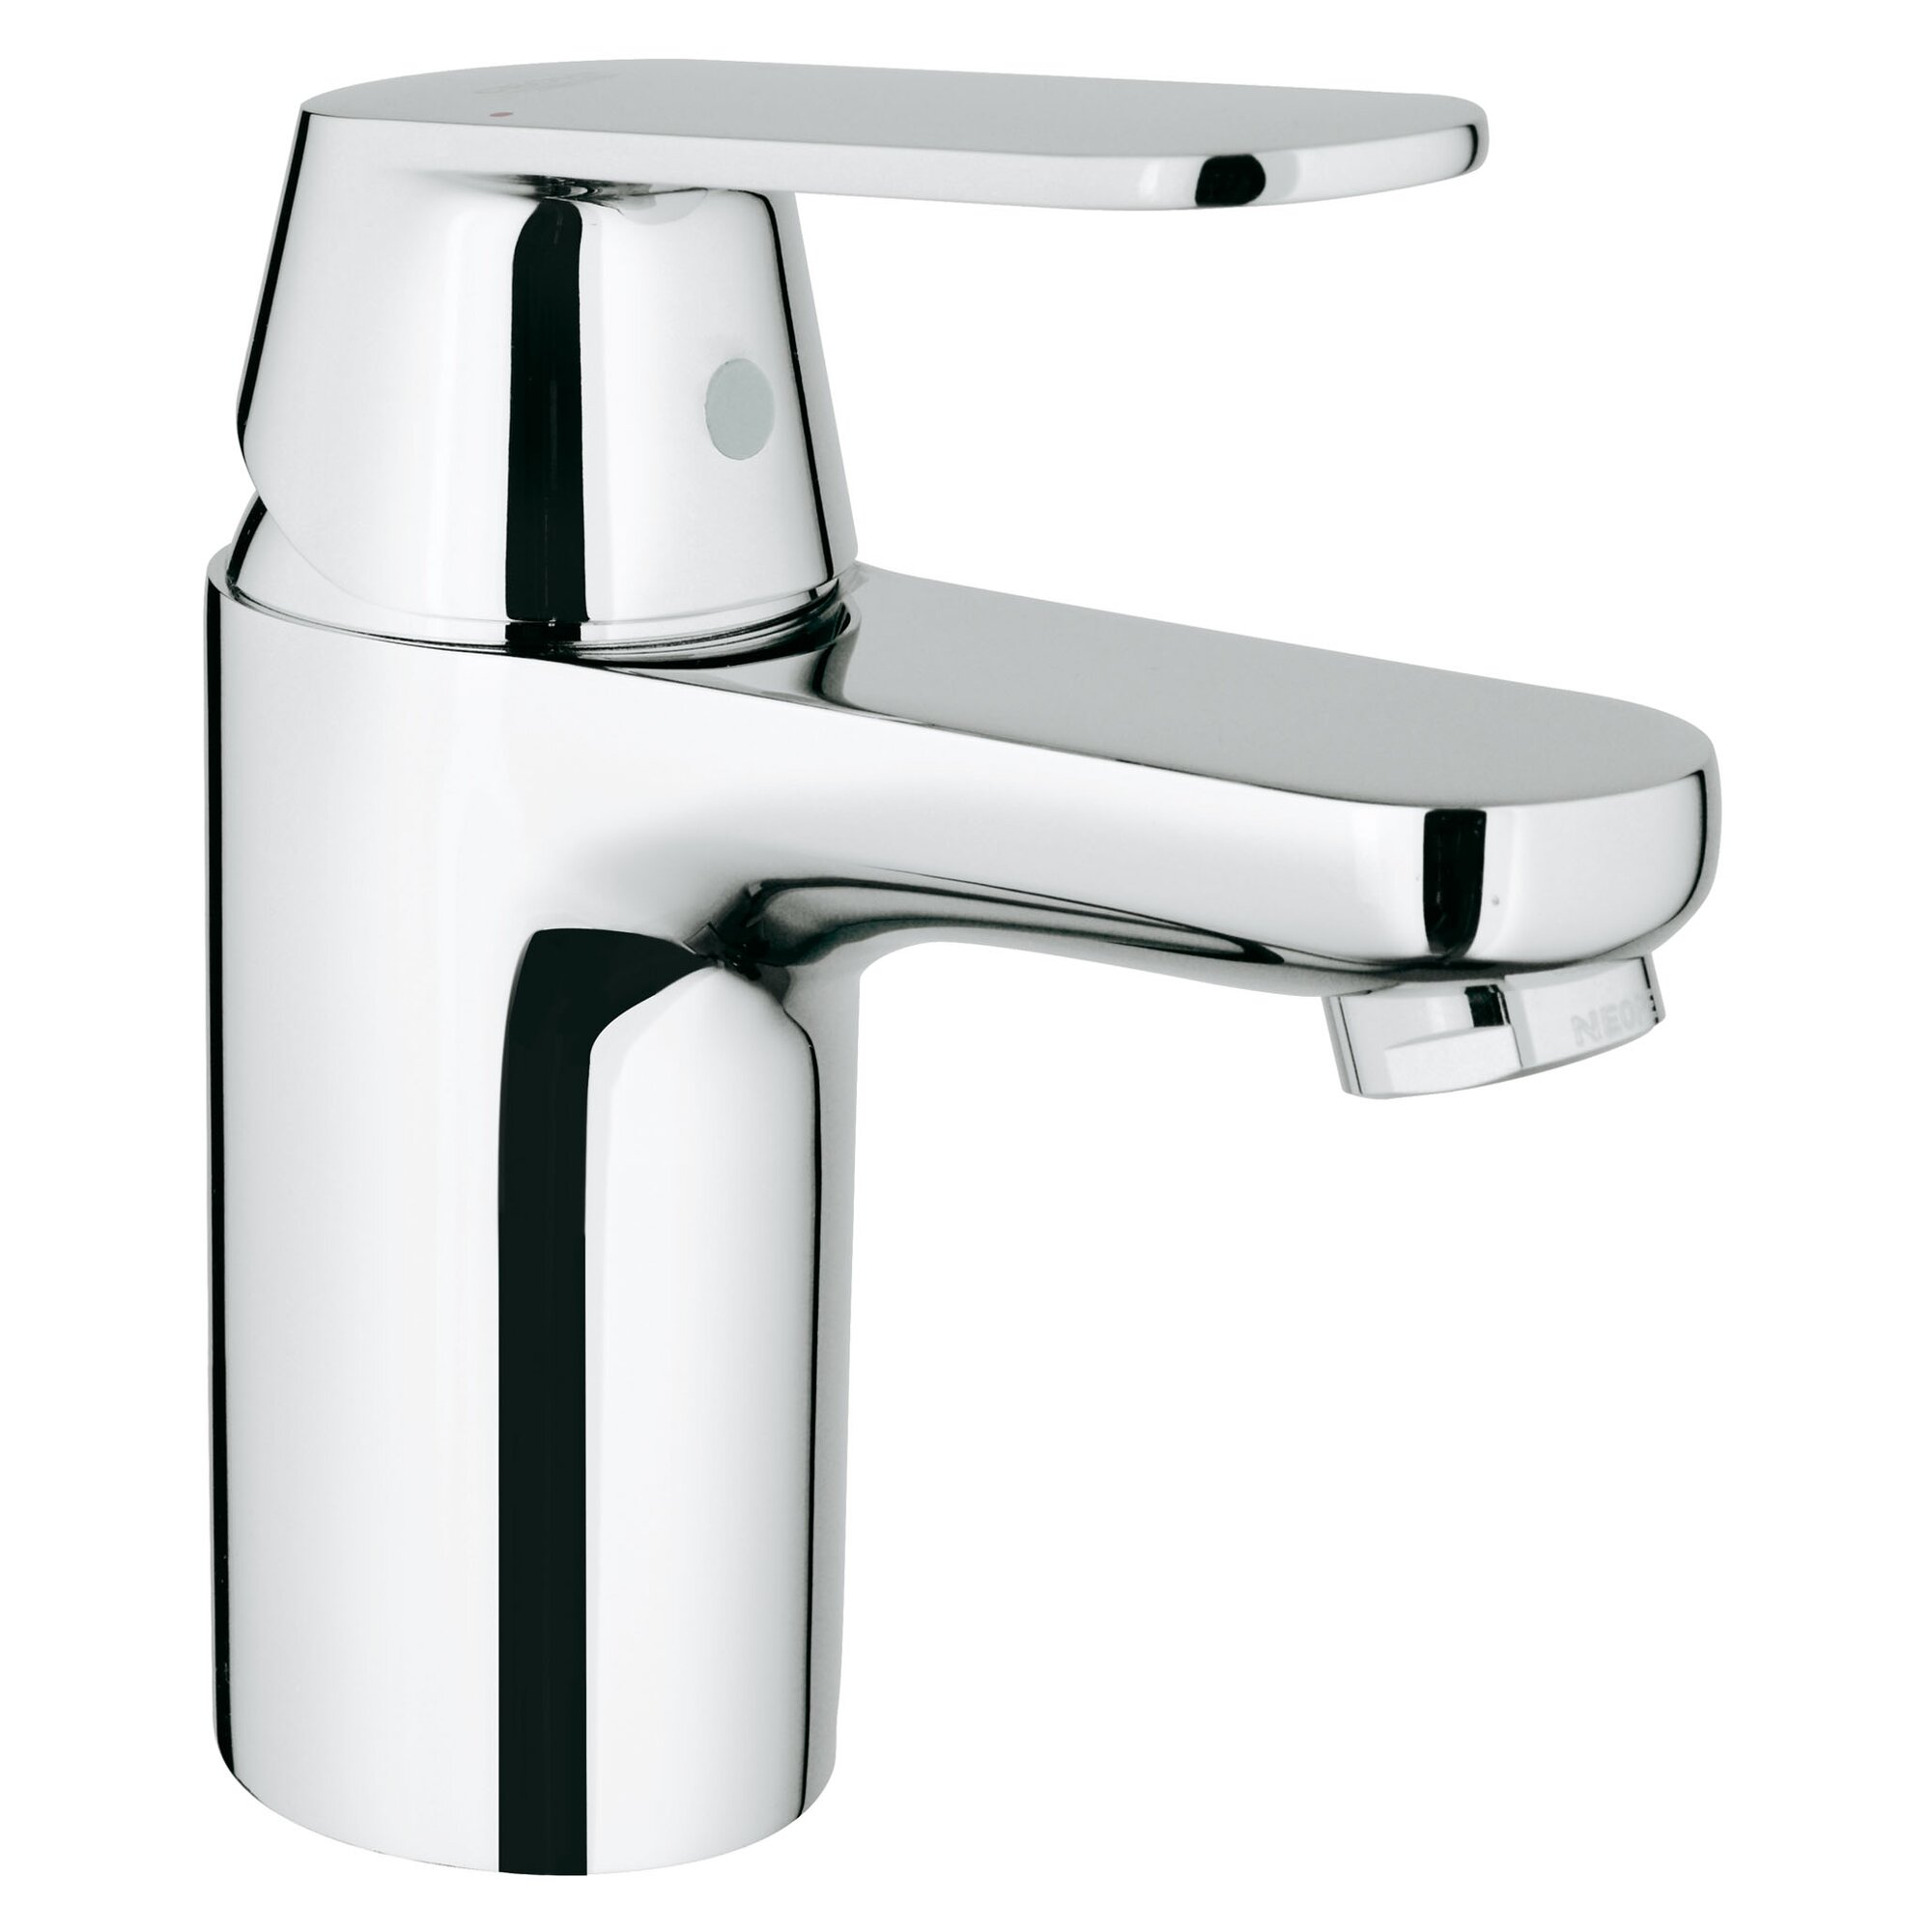 Grohe Bathroom Faucets Parts Grohe Eurosmart Single Handle Single Hole Bathroom Faucet